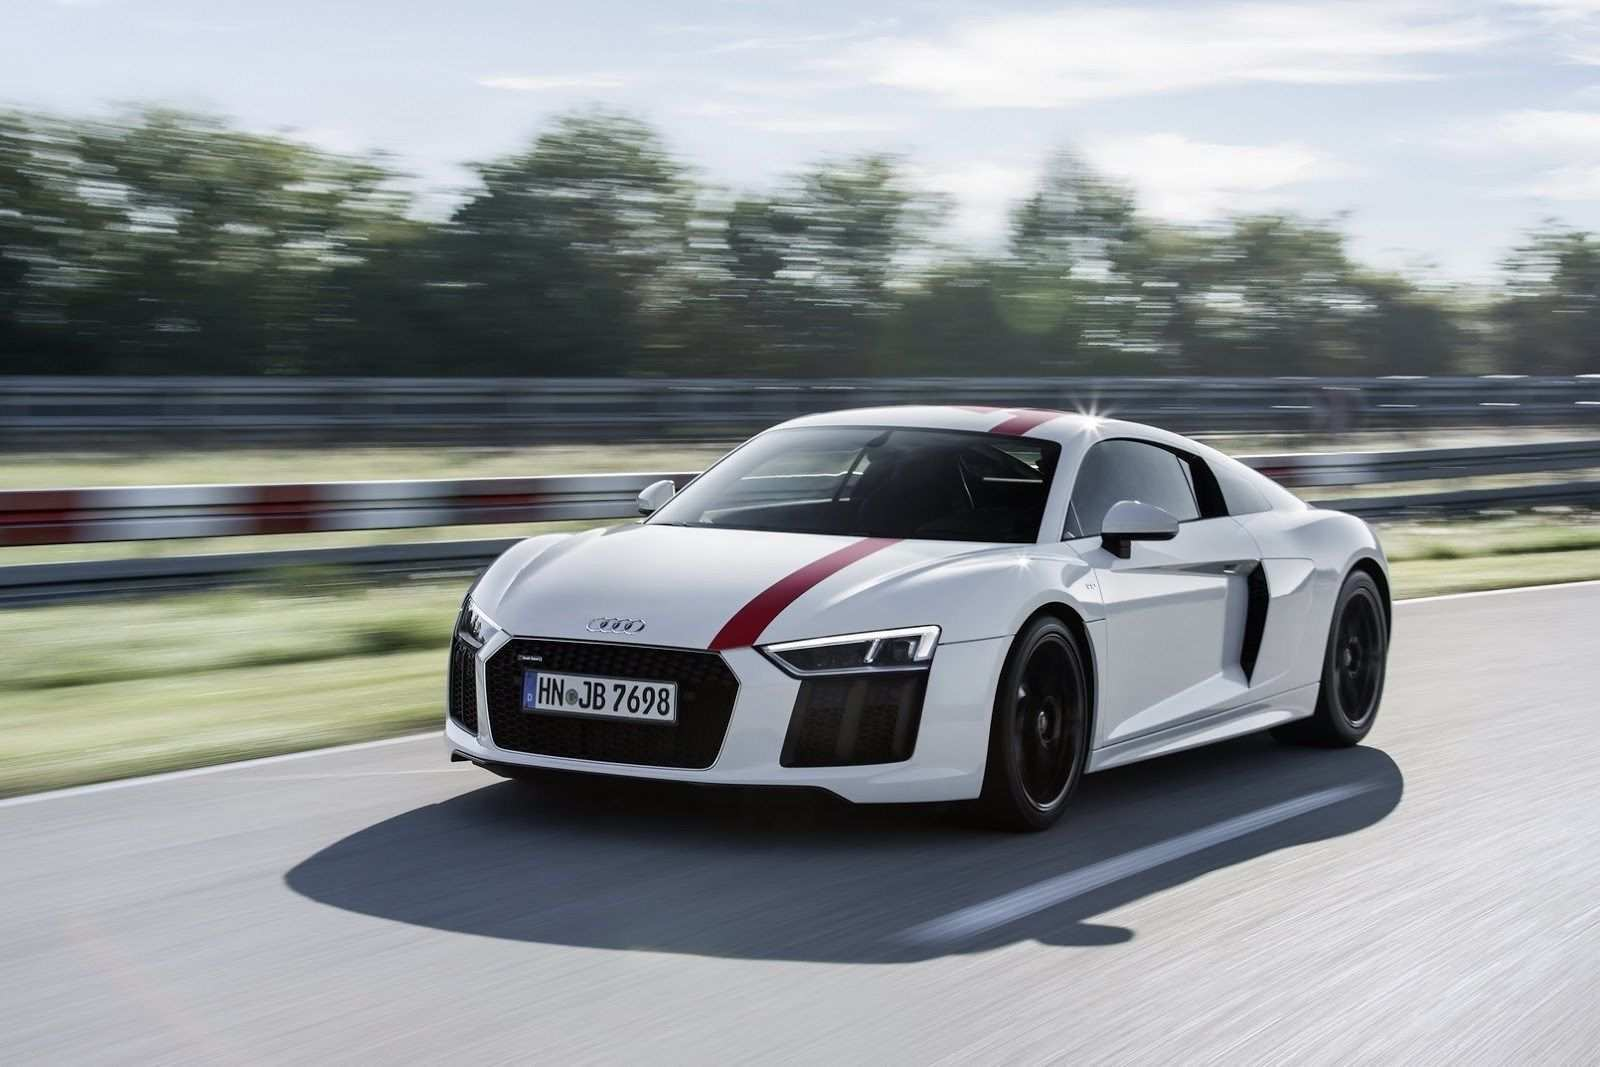 91 All New 2020 Audi R8 LMXs Redesign and Concept with 2020 Audi R8 LMXs